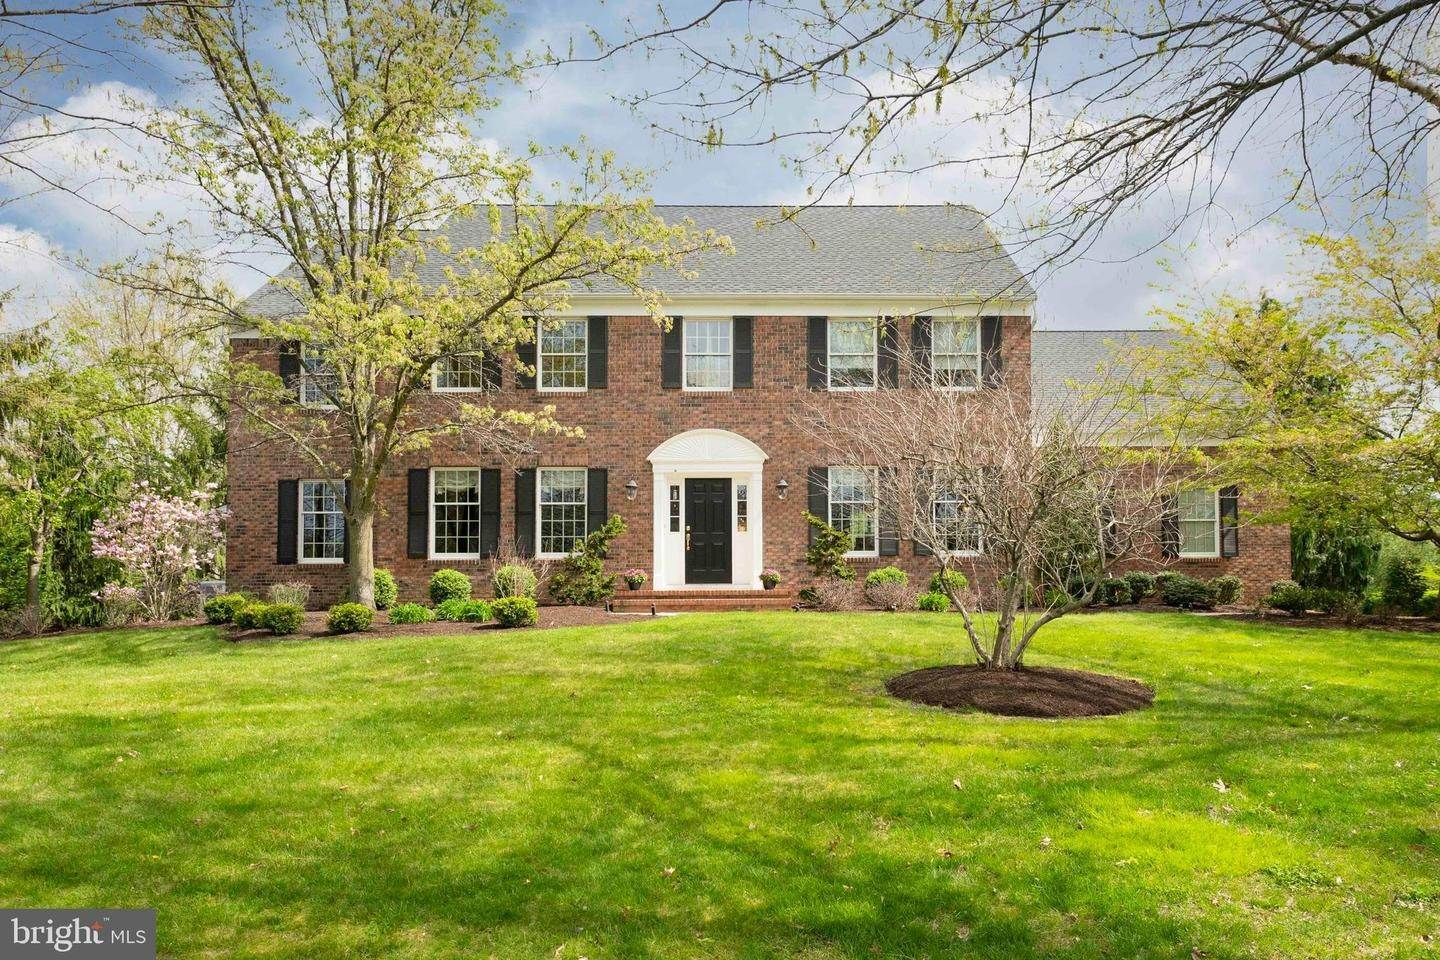 Detached House for Sale at 1 WYNWOOD Drive Princeton Junction, New Jersey 08550 United States